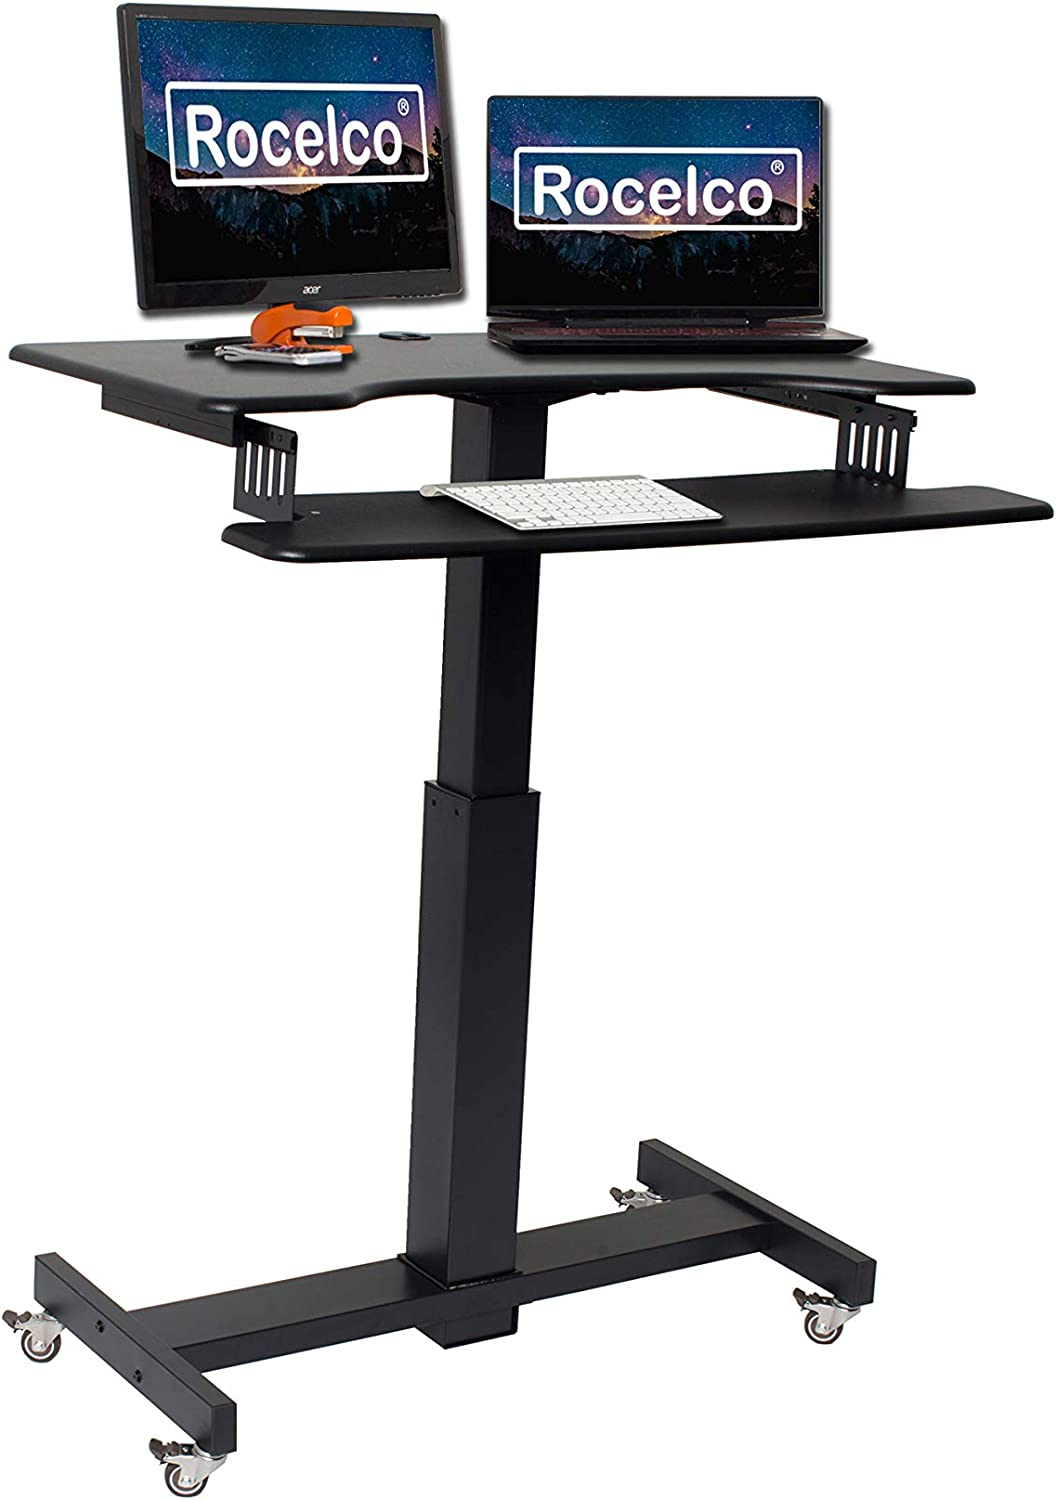 Amazon Com Rocelco 40 Height Adjustable Mobile Standing Desk Sit Stand Home Office School Computer Workstation Riser Dual Monitor Keyboard Tray Gas Spring Assist Black R Msd 40 Office Products